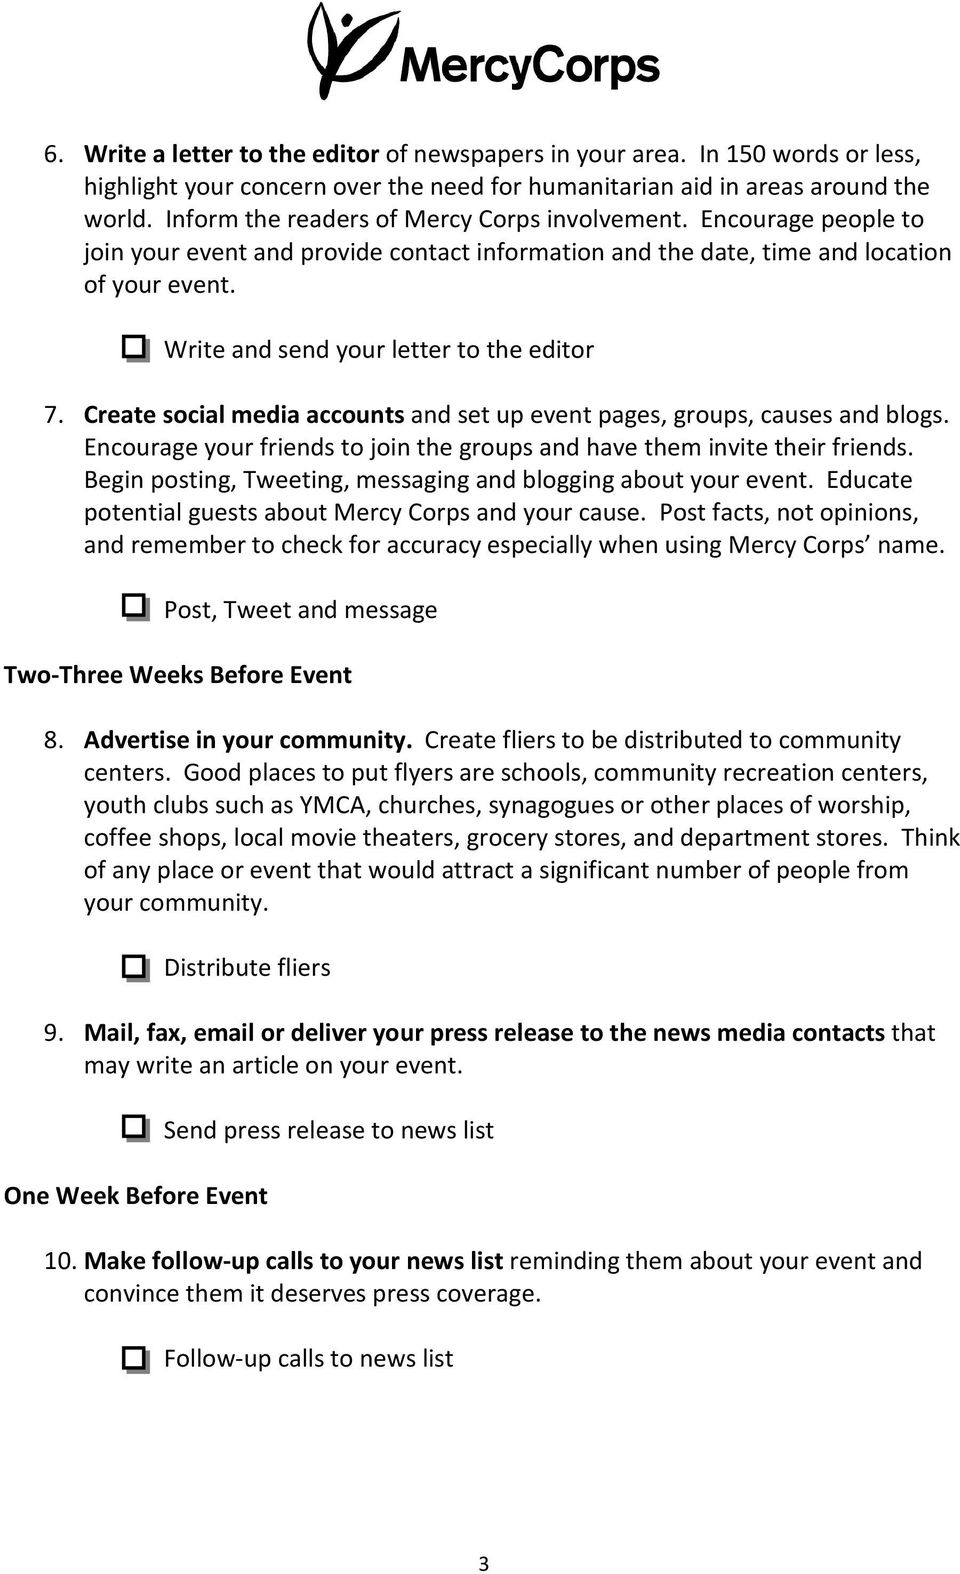 Write and send your letter to the editor 7. Create social media accounts and set up event pages, groups, causes and blogs. Encourage your friends to join the groups and have them invite their friends.